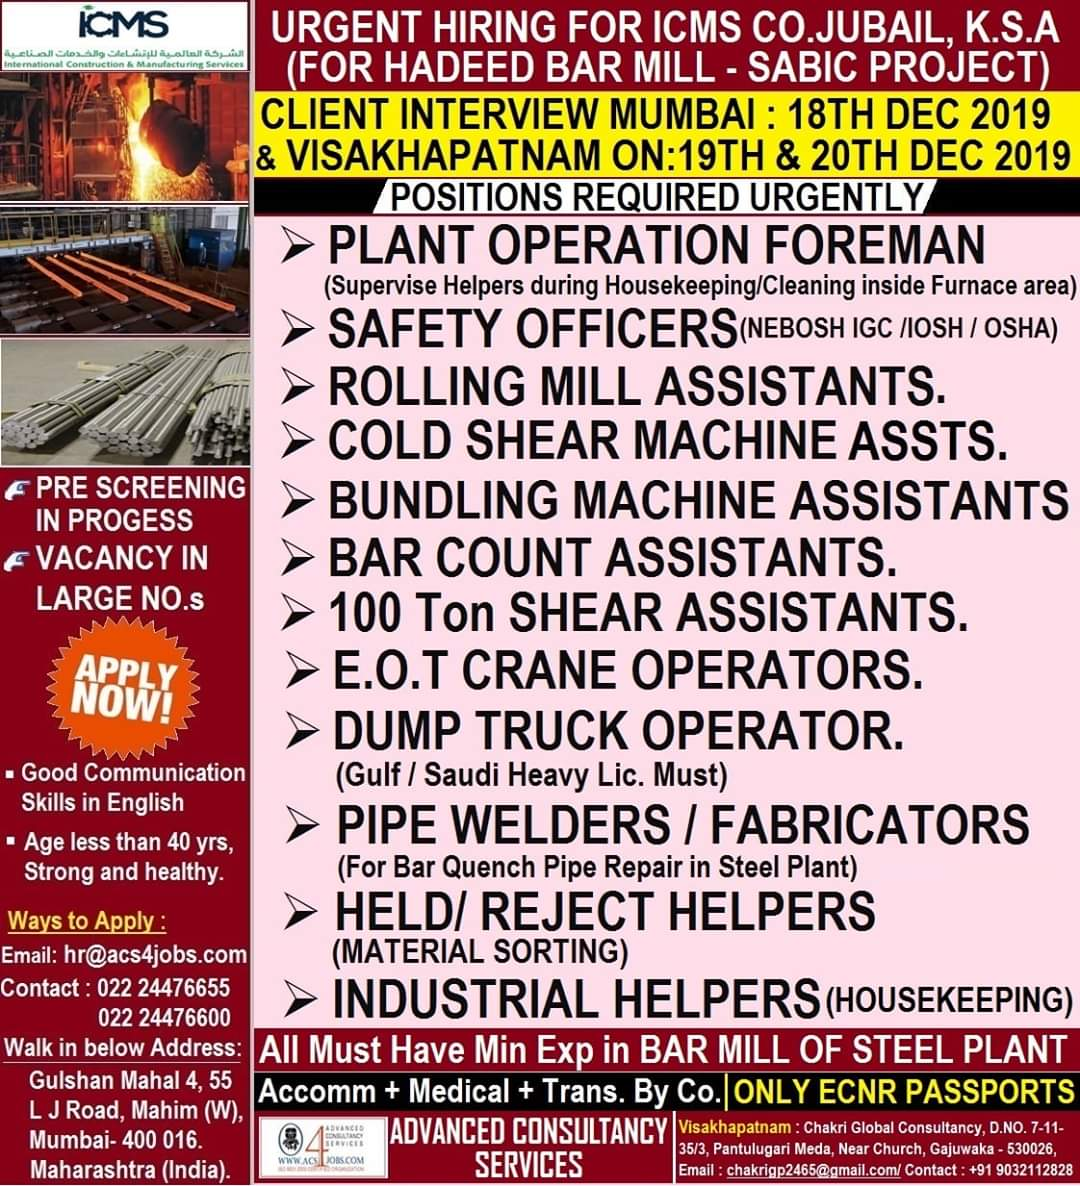 URGENT HIRING FOR ICMS CO. JUBAIL,KSA